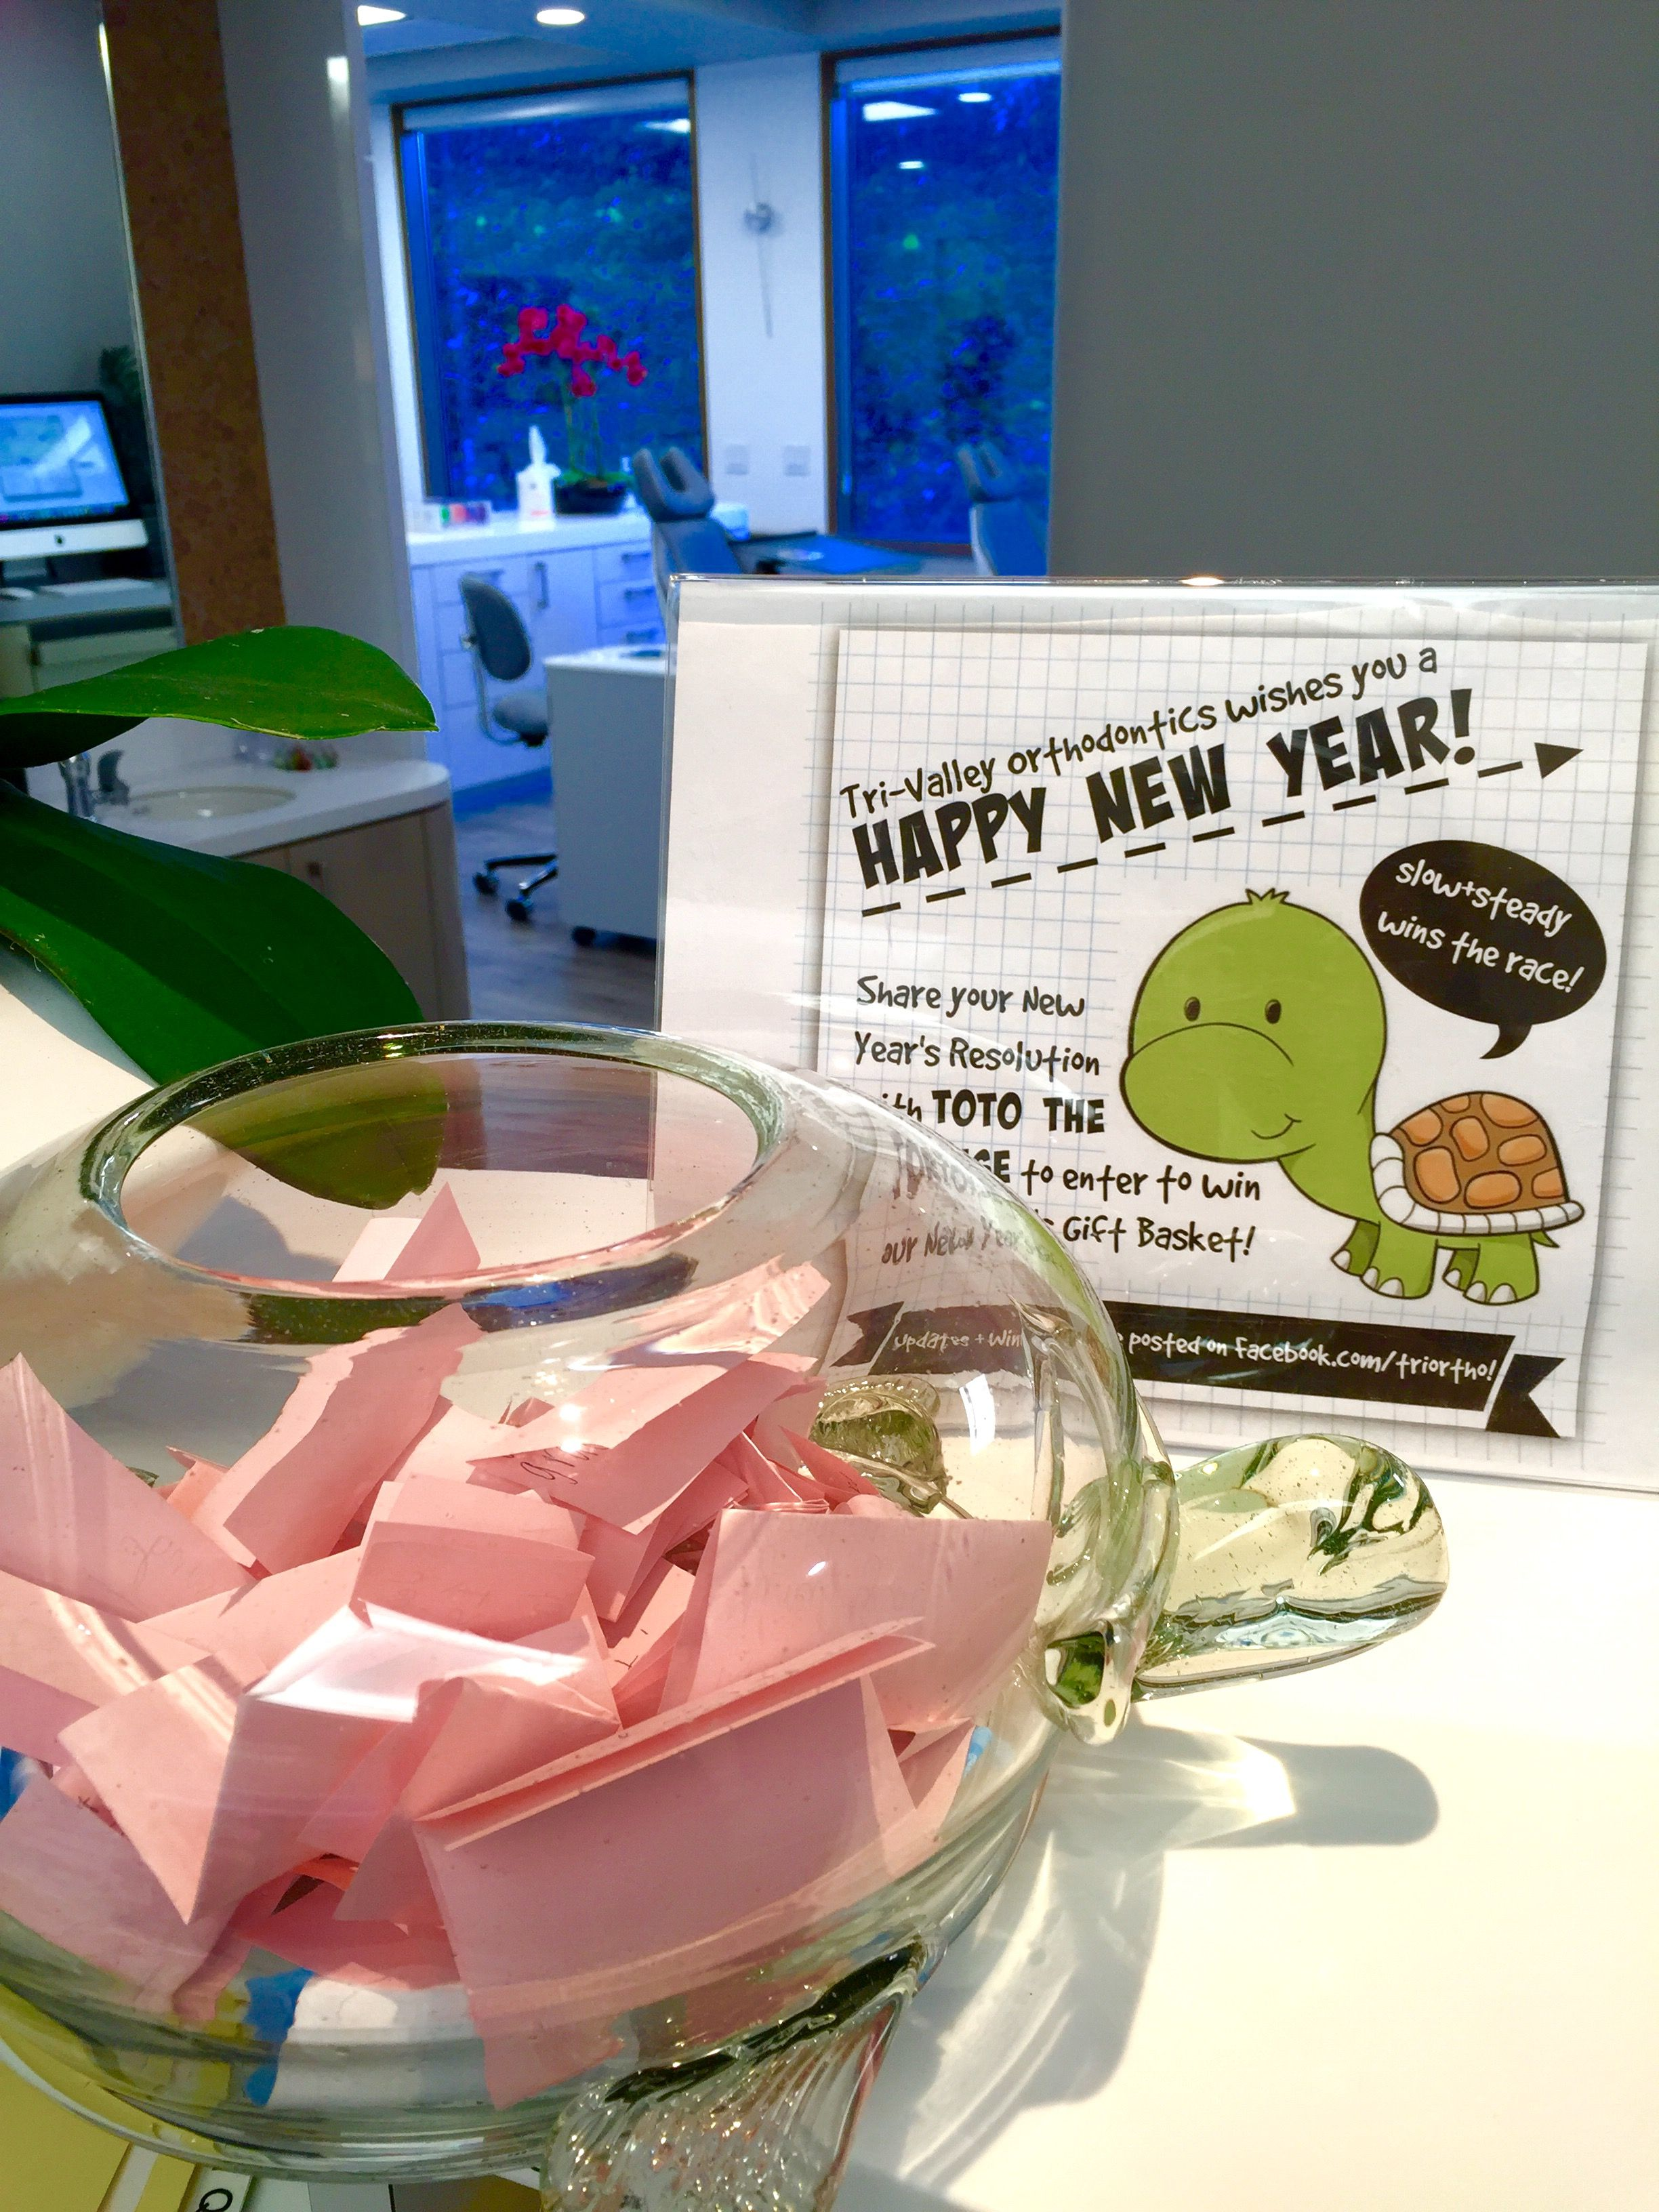 Your Resolutions & Our January Prize Winner Orthodontics